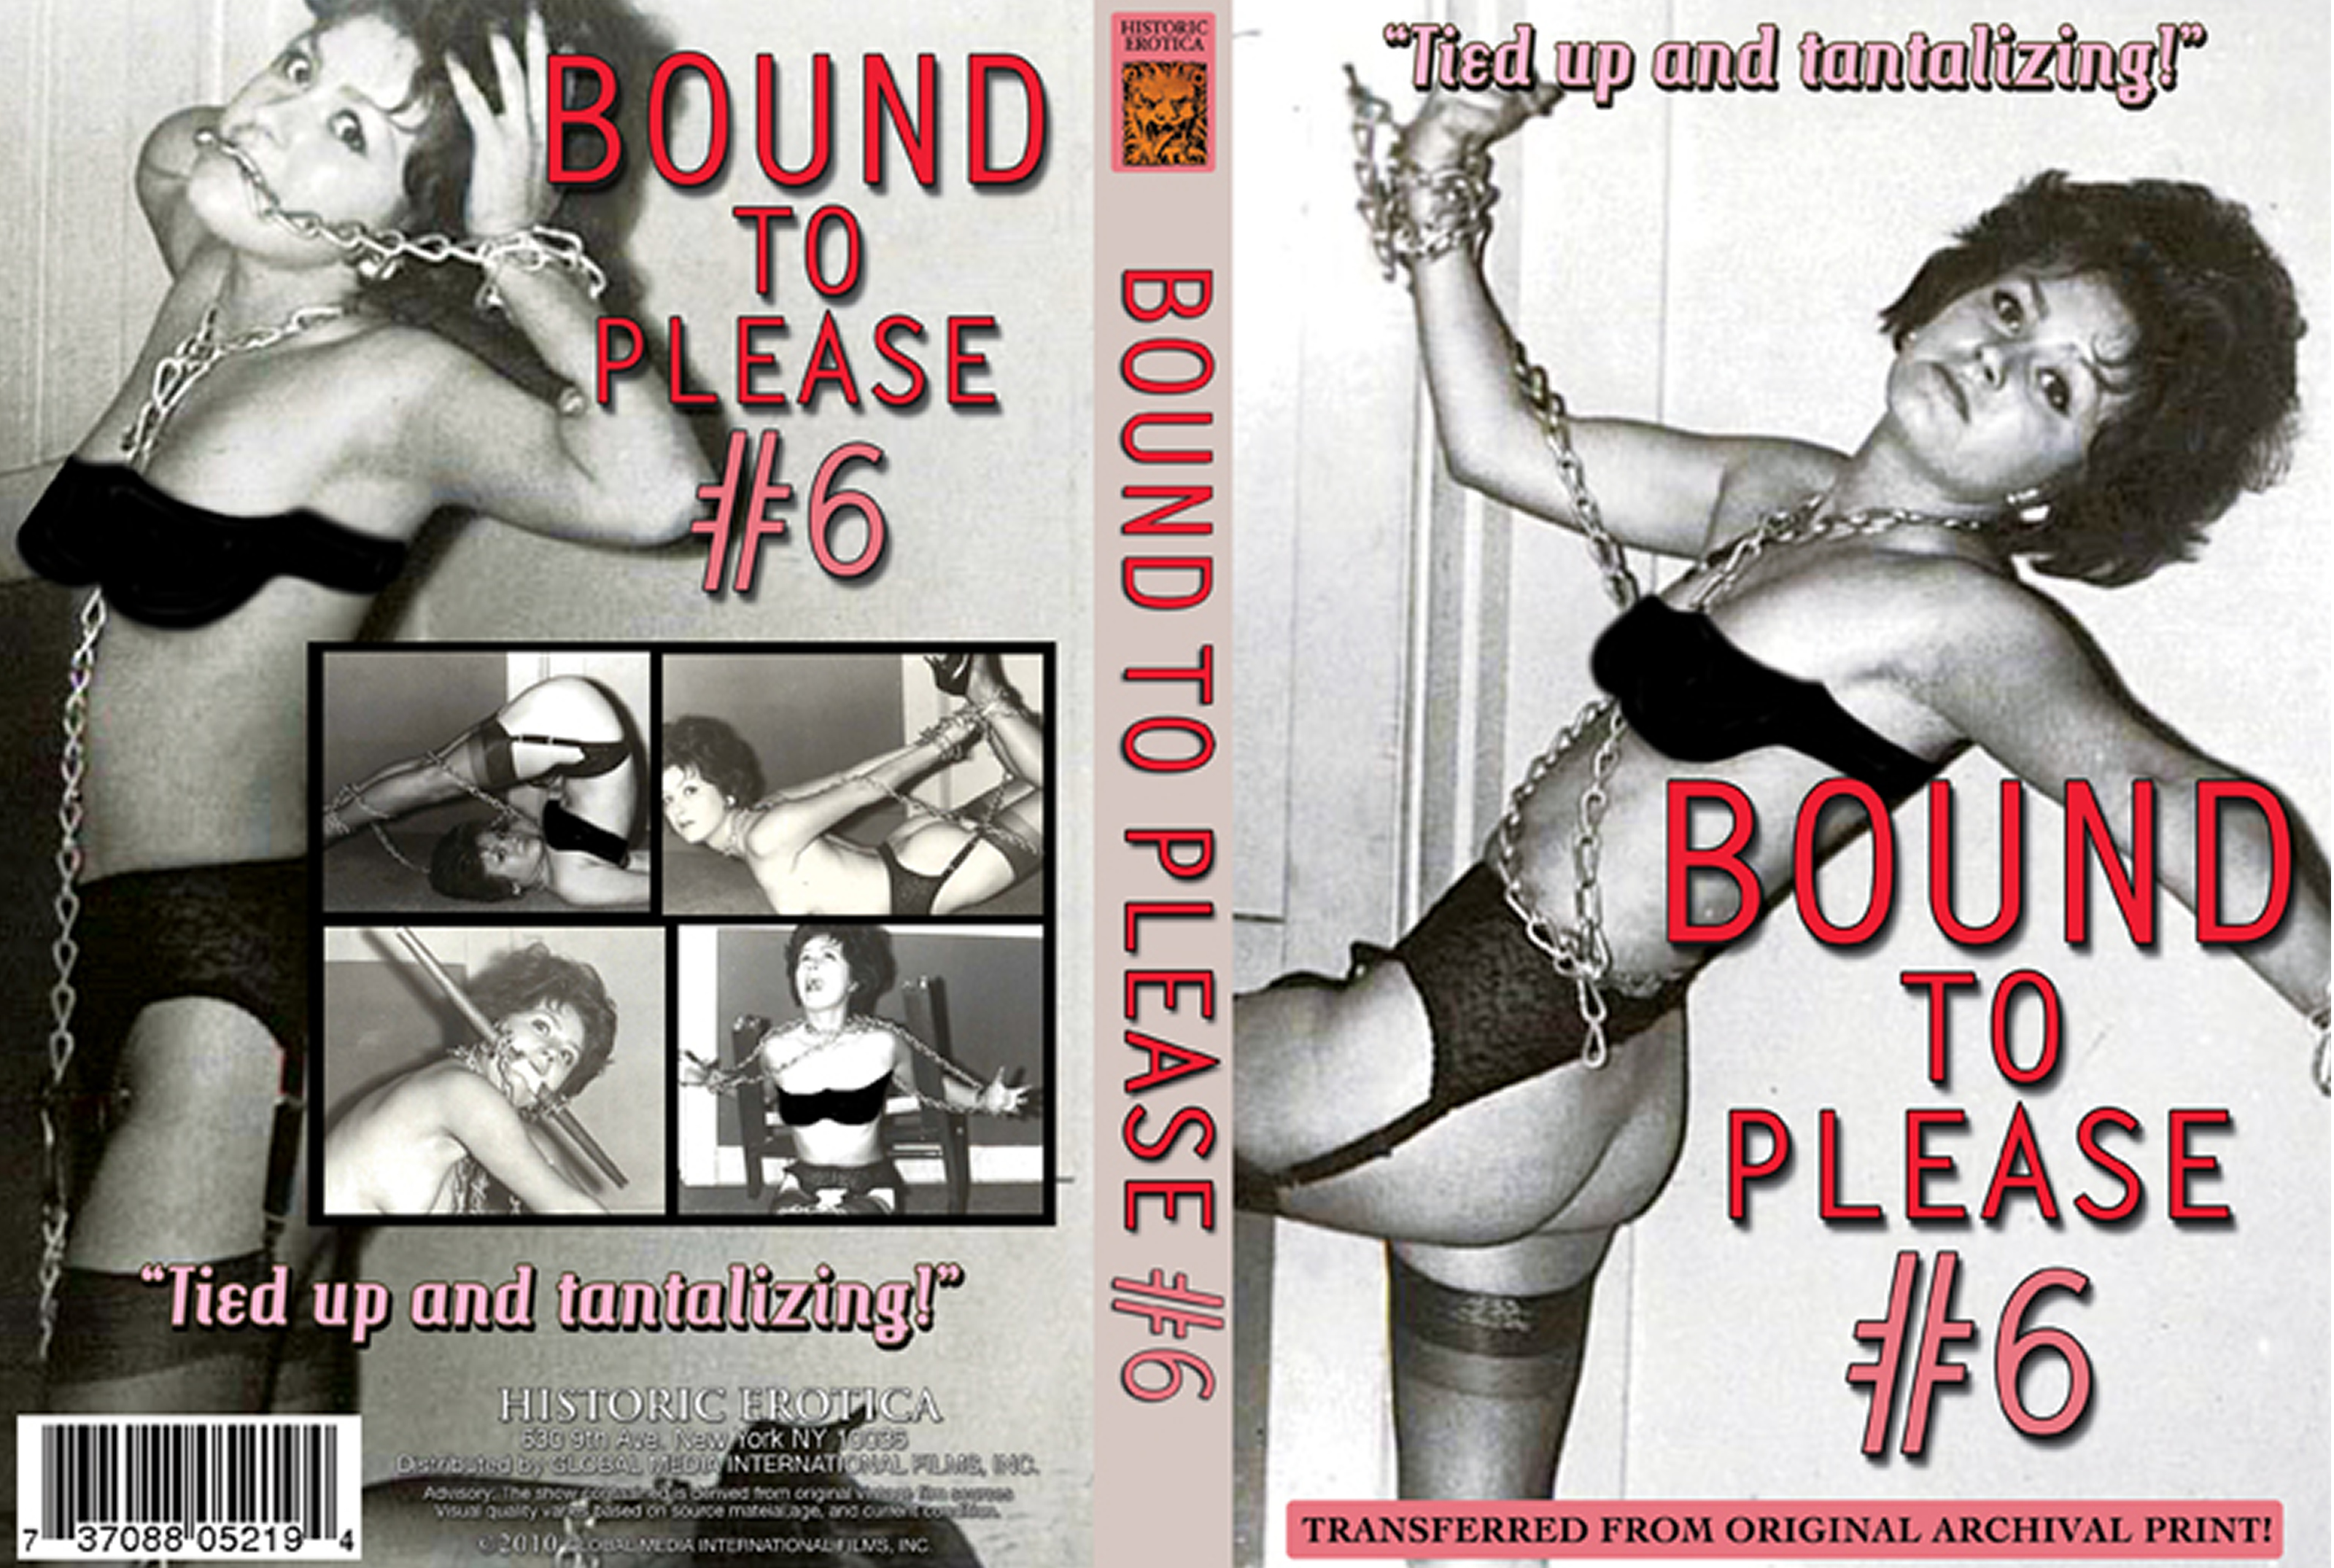 Bound to Please #6